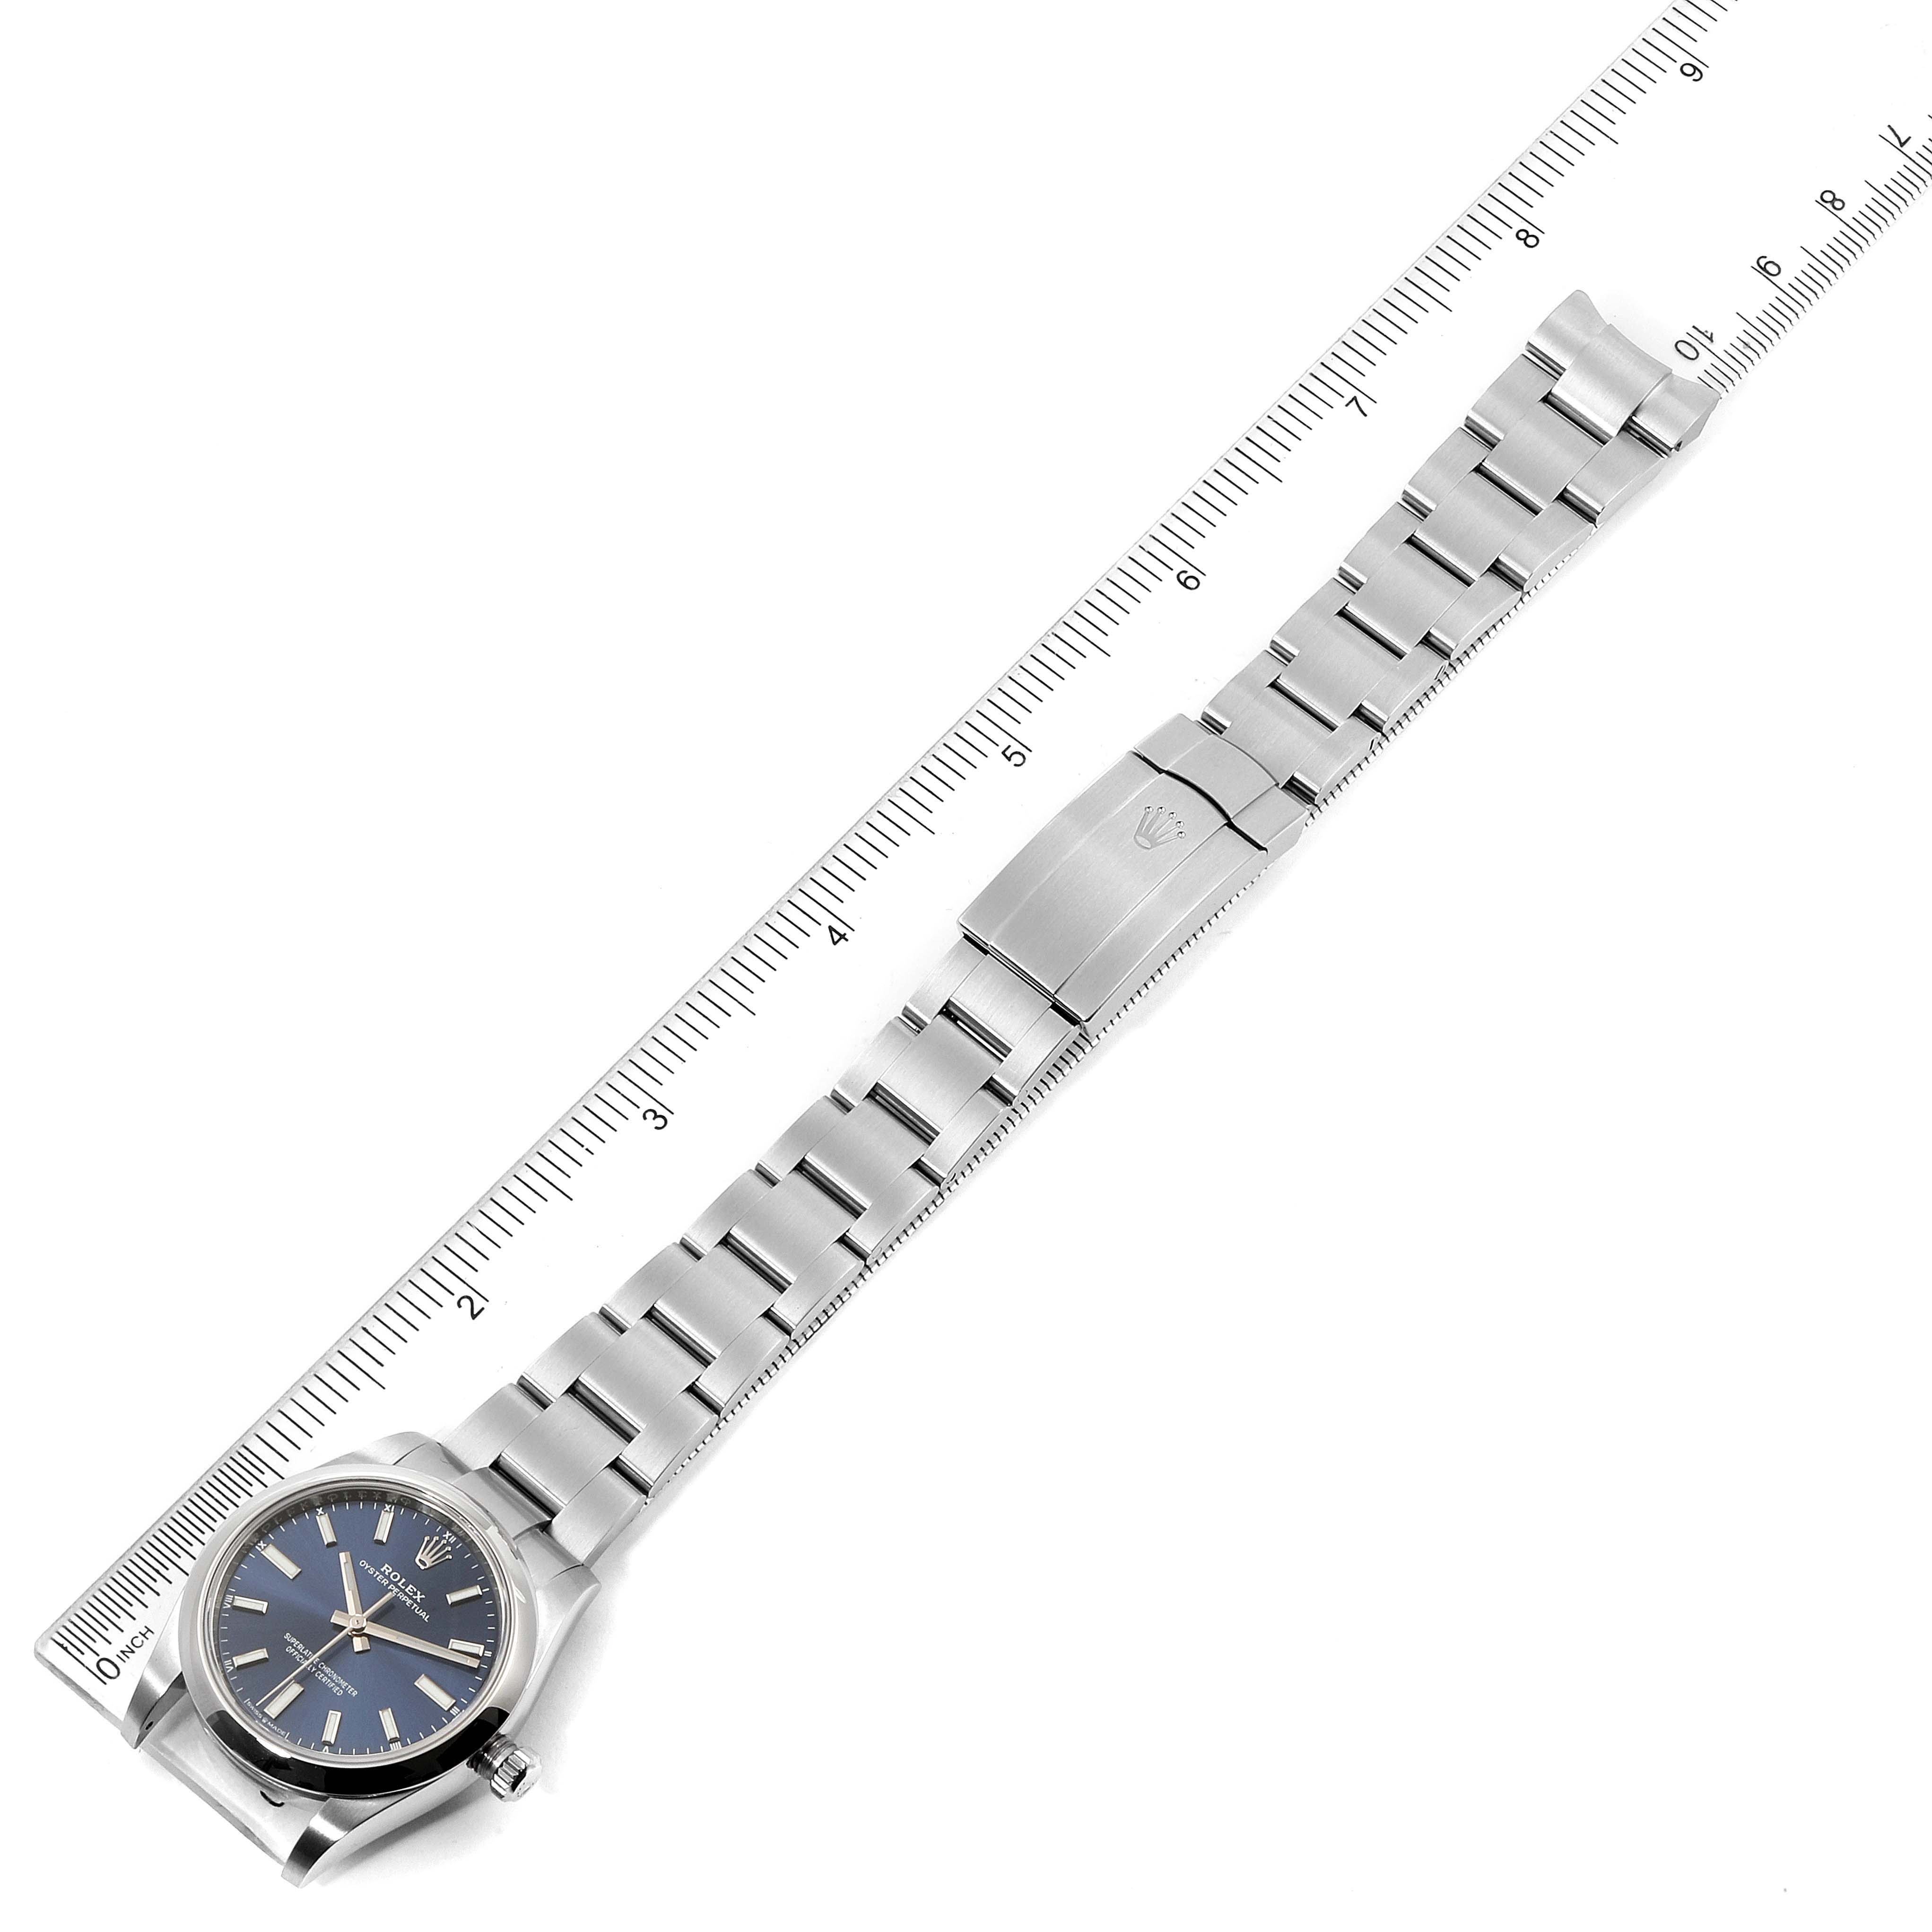 Rolex Oyster Perpetual 34mm Blue Dial Steel Mens Watch 124200 Box Card SwissWatchExpo